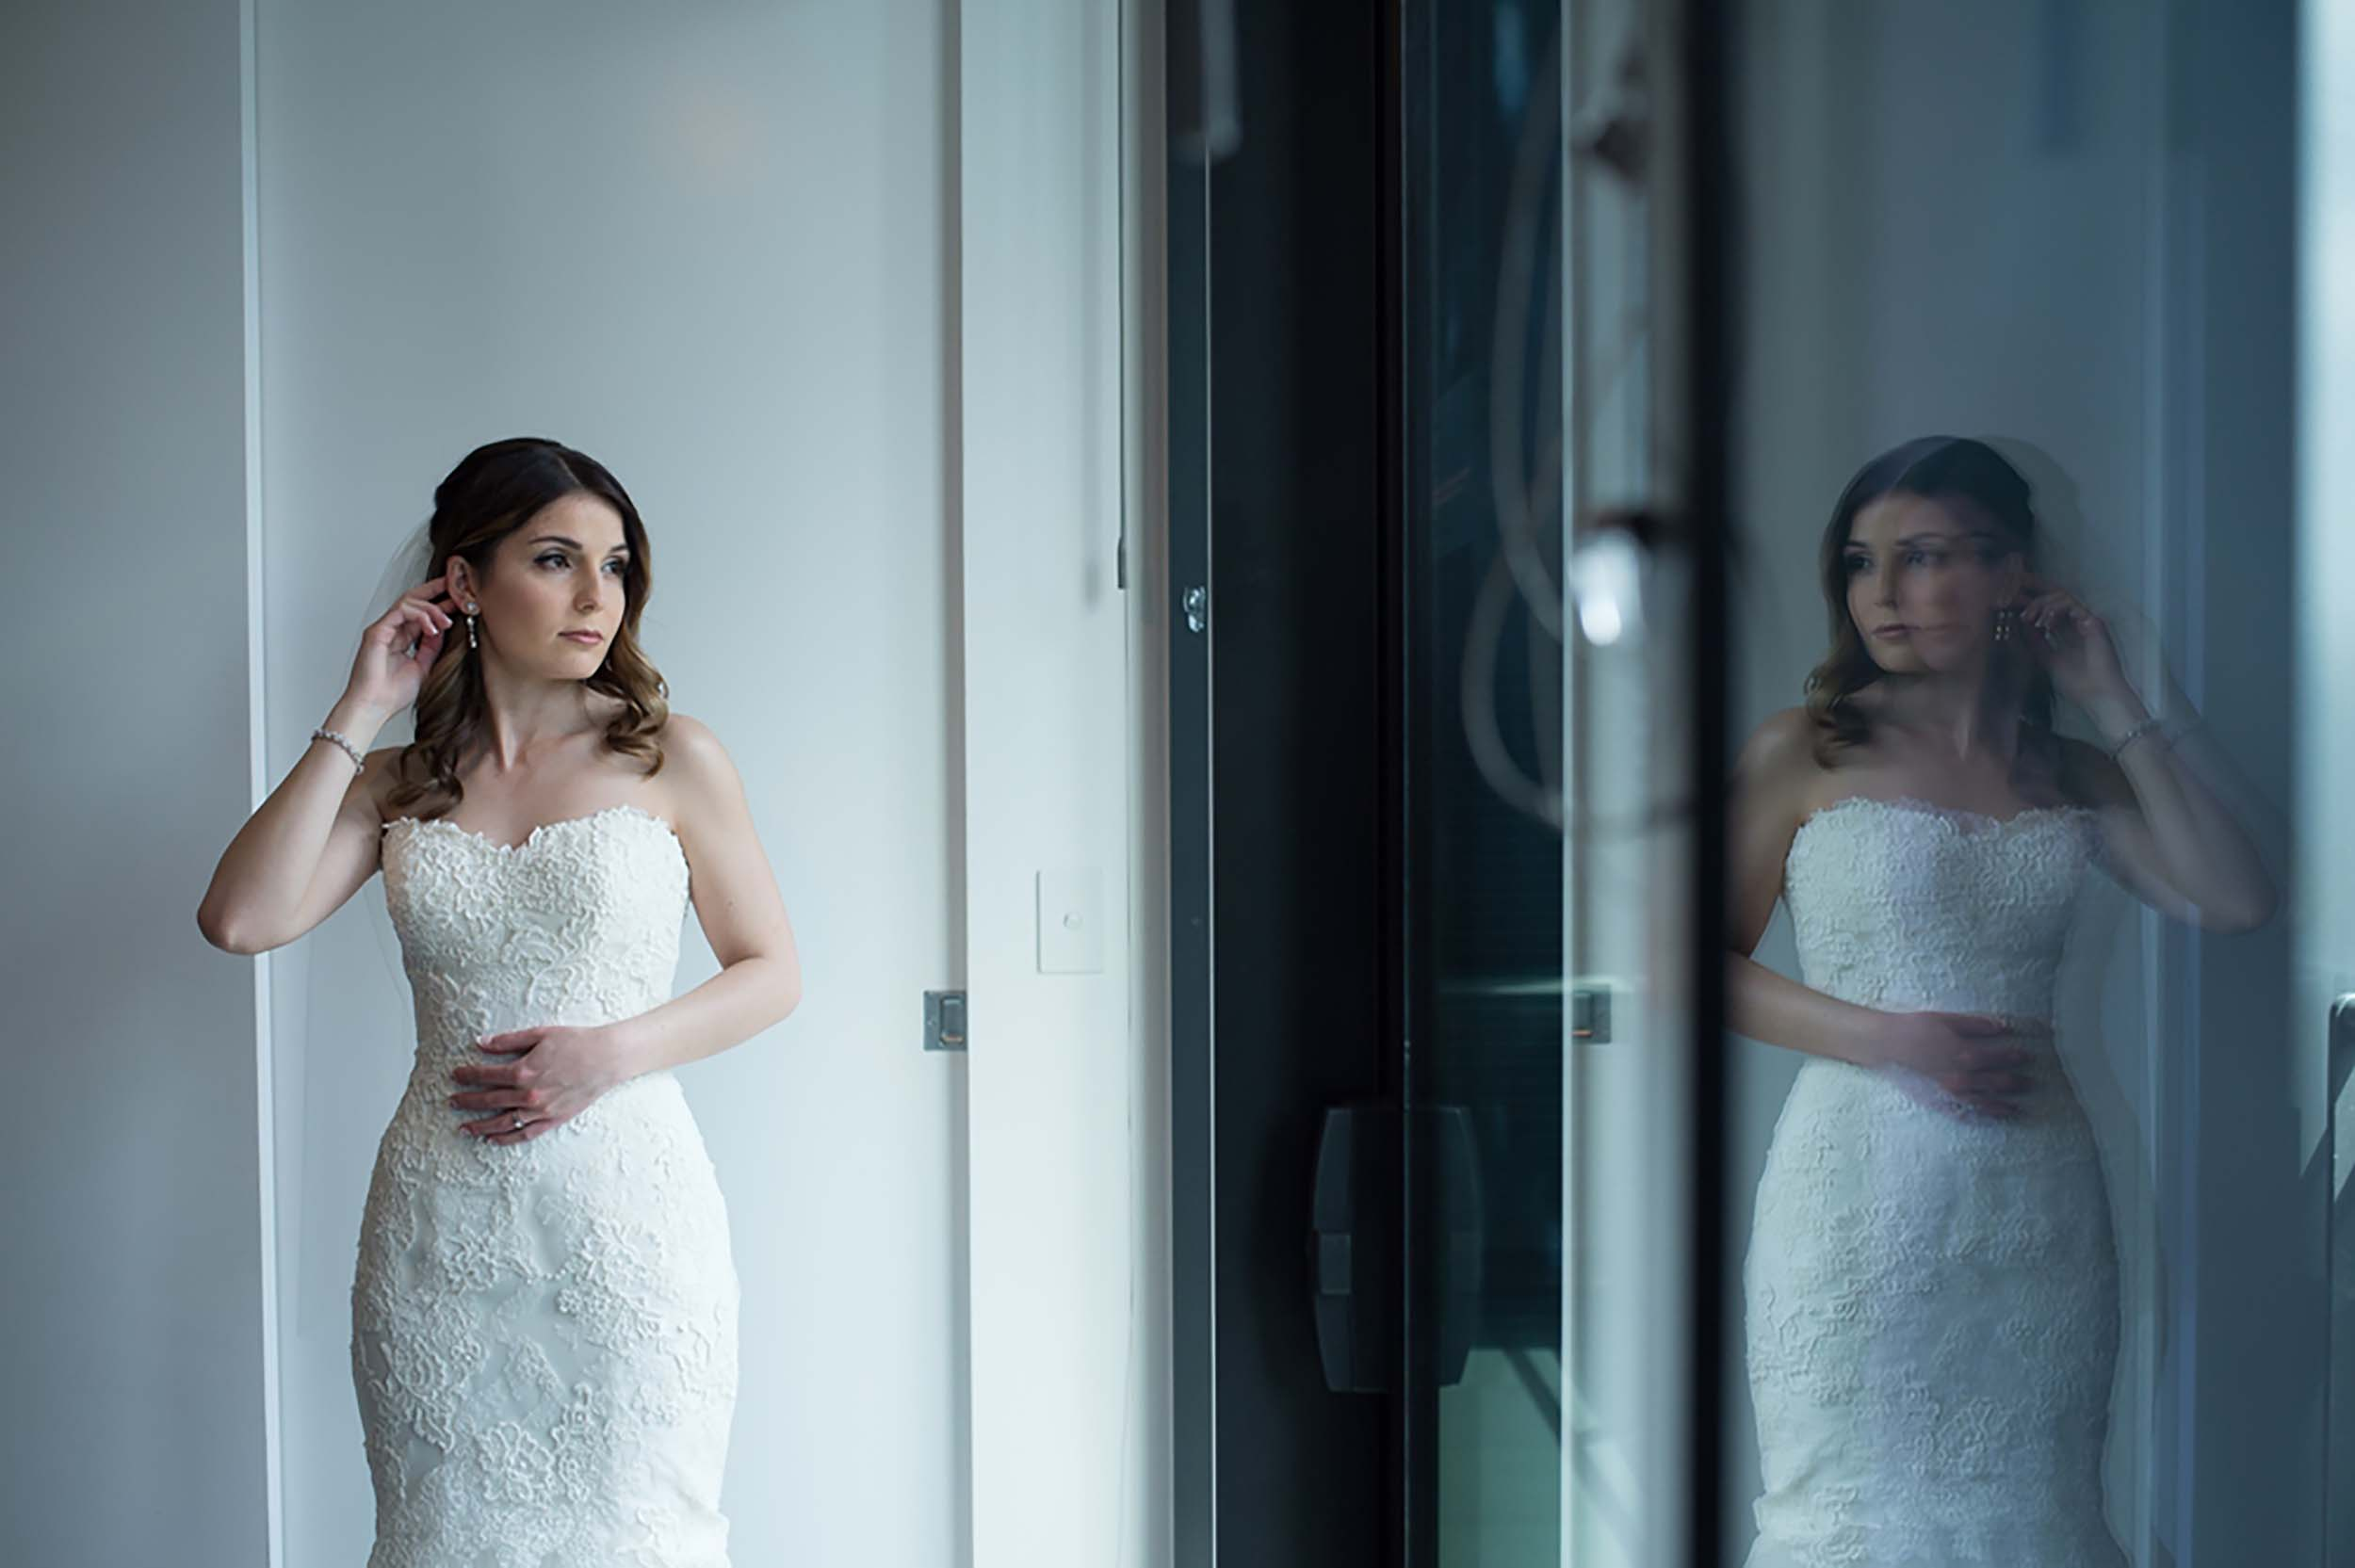 Bride Reflection in Glass